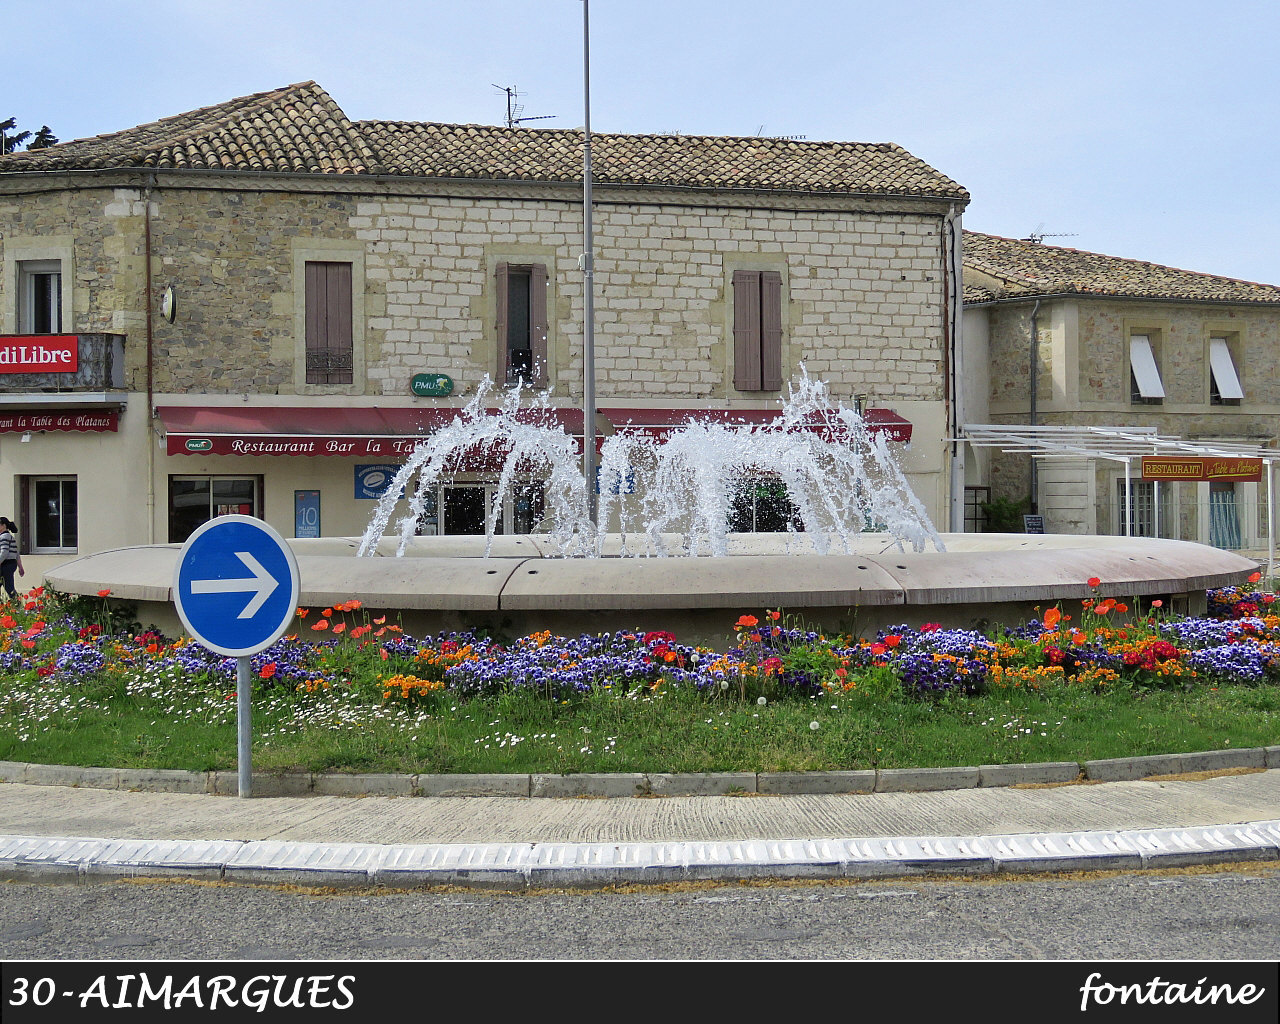 30AIMARGUES_fontaine_110.jpg